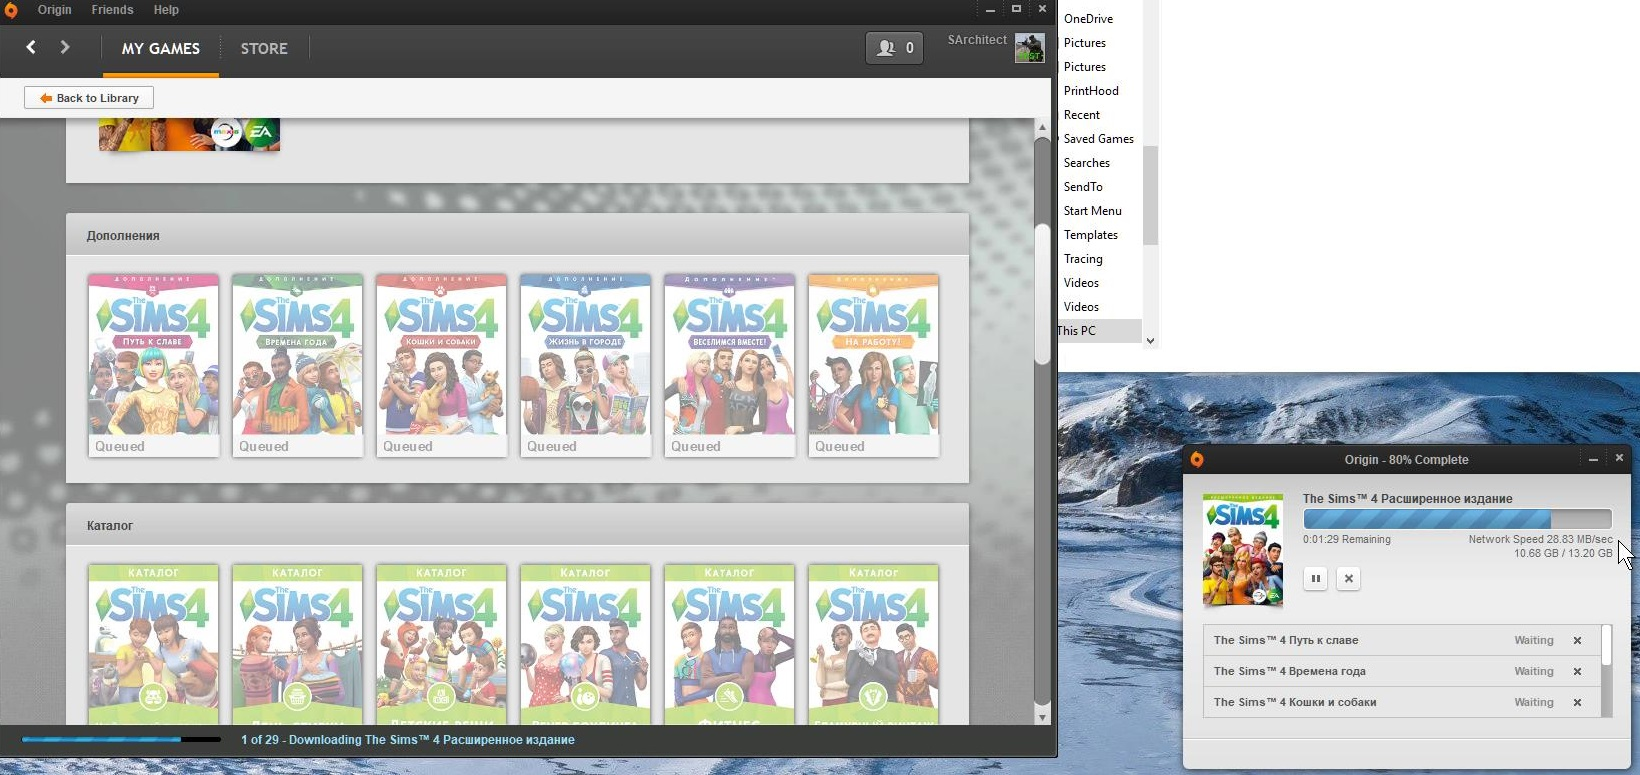 The Sims 4 StrangerVille 1.50.67.1020 + Any DLC and Automatic Updates - The Sim Architect